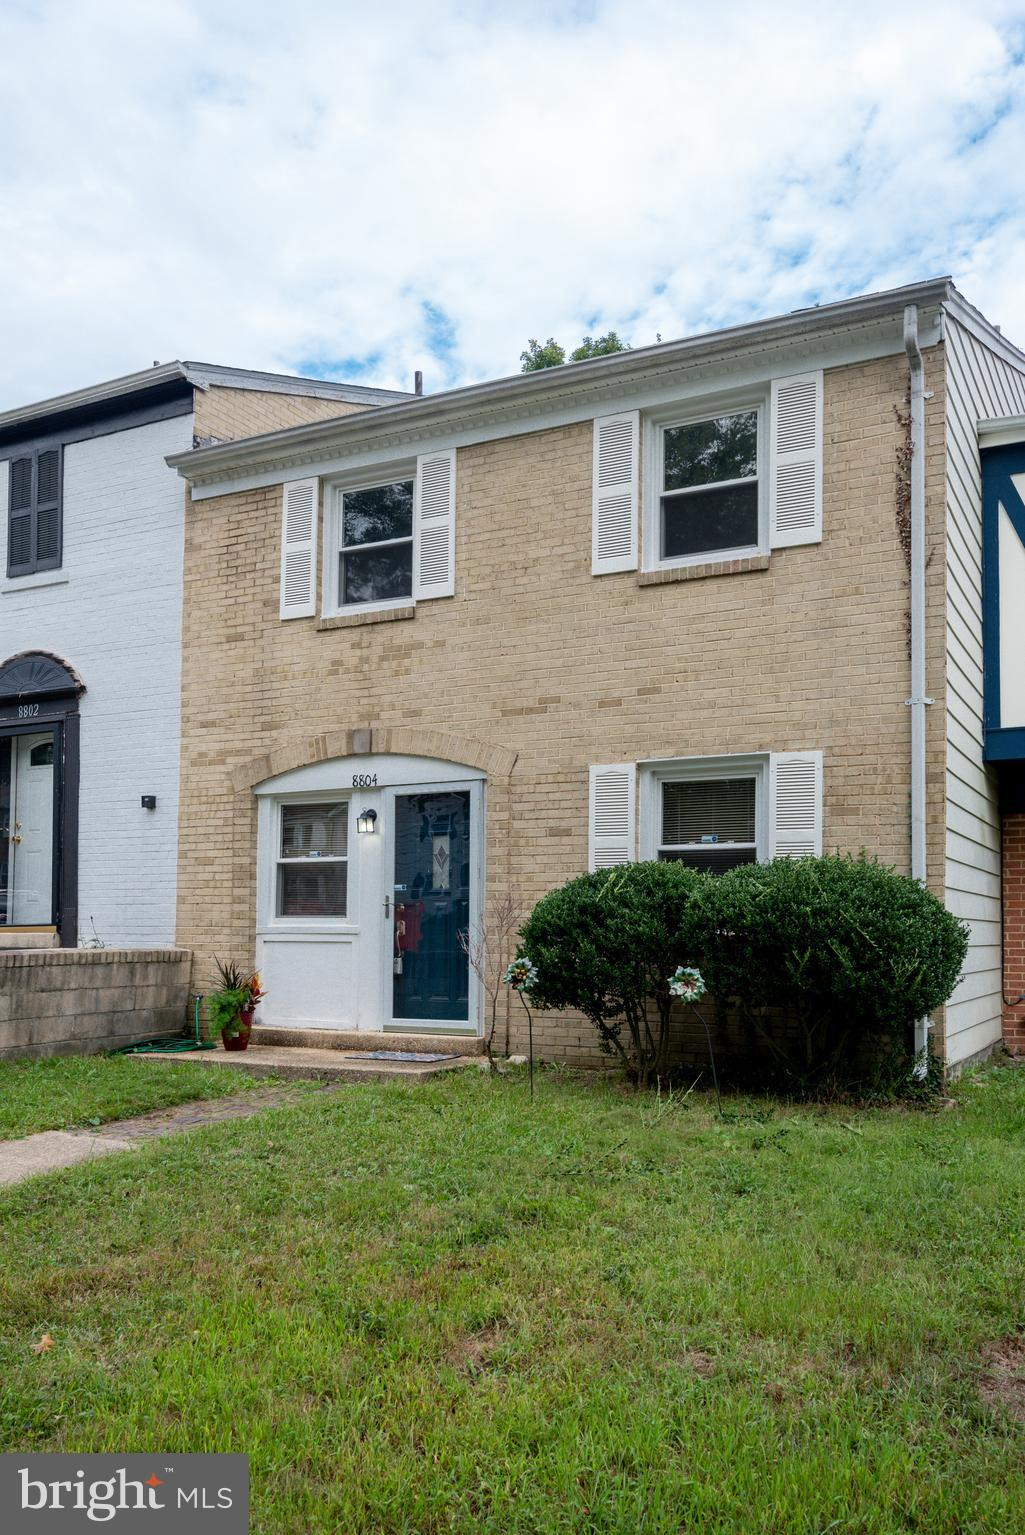 Refreshed and ready for new owners!  This well maintained 3 bedroom, 2 1/2 bath townhome is located